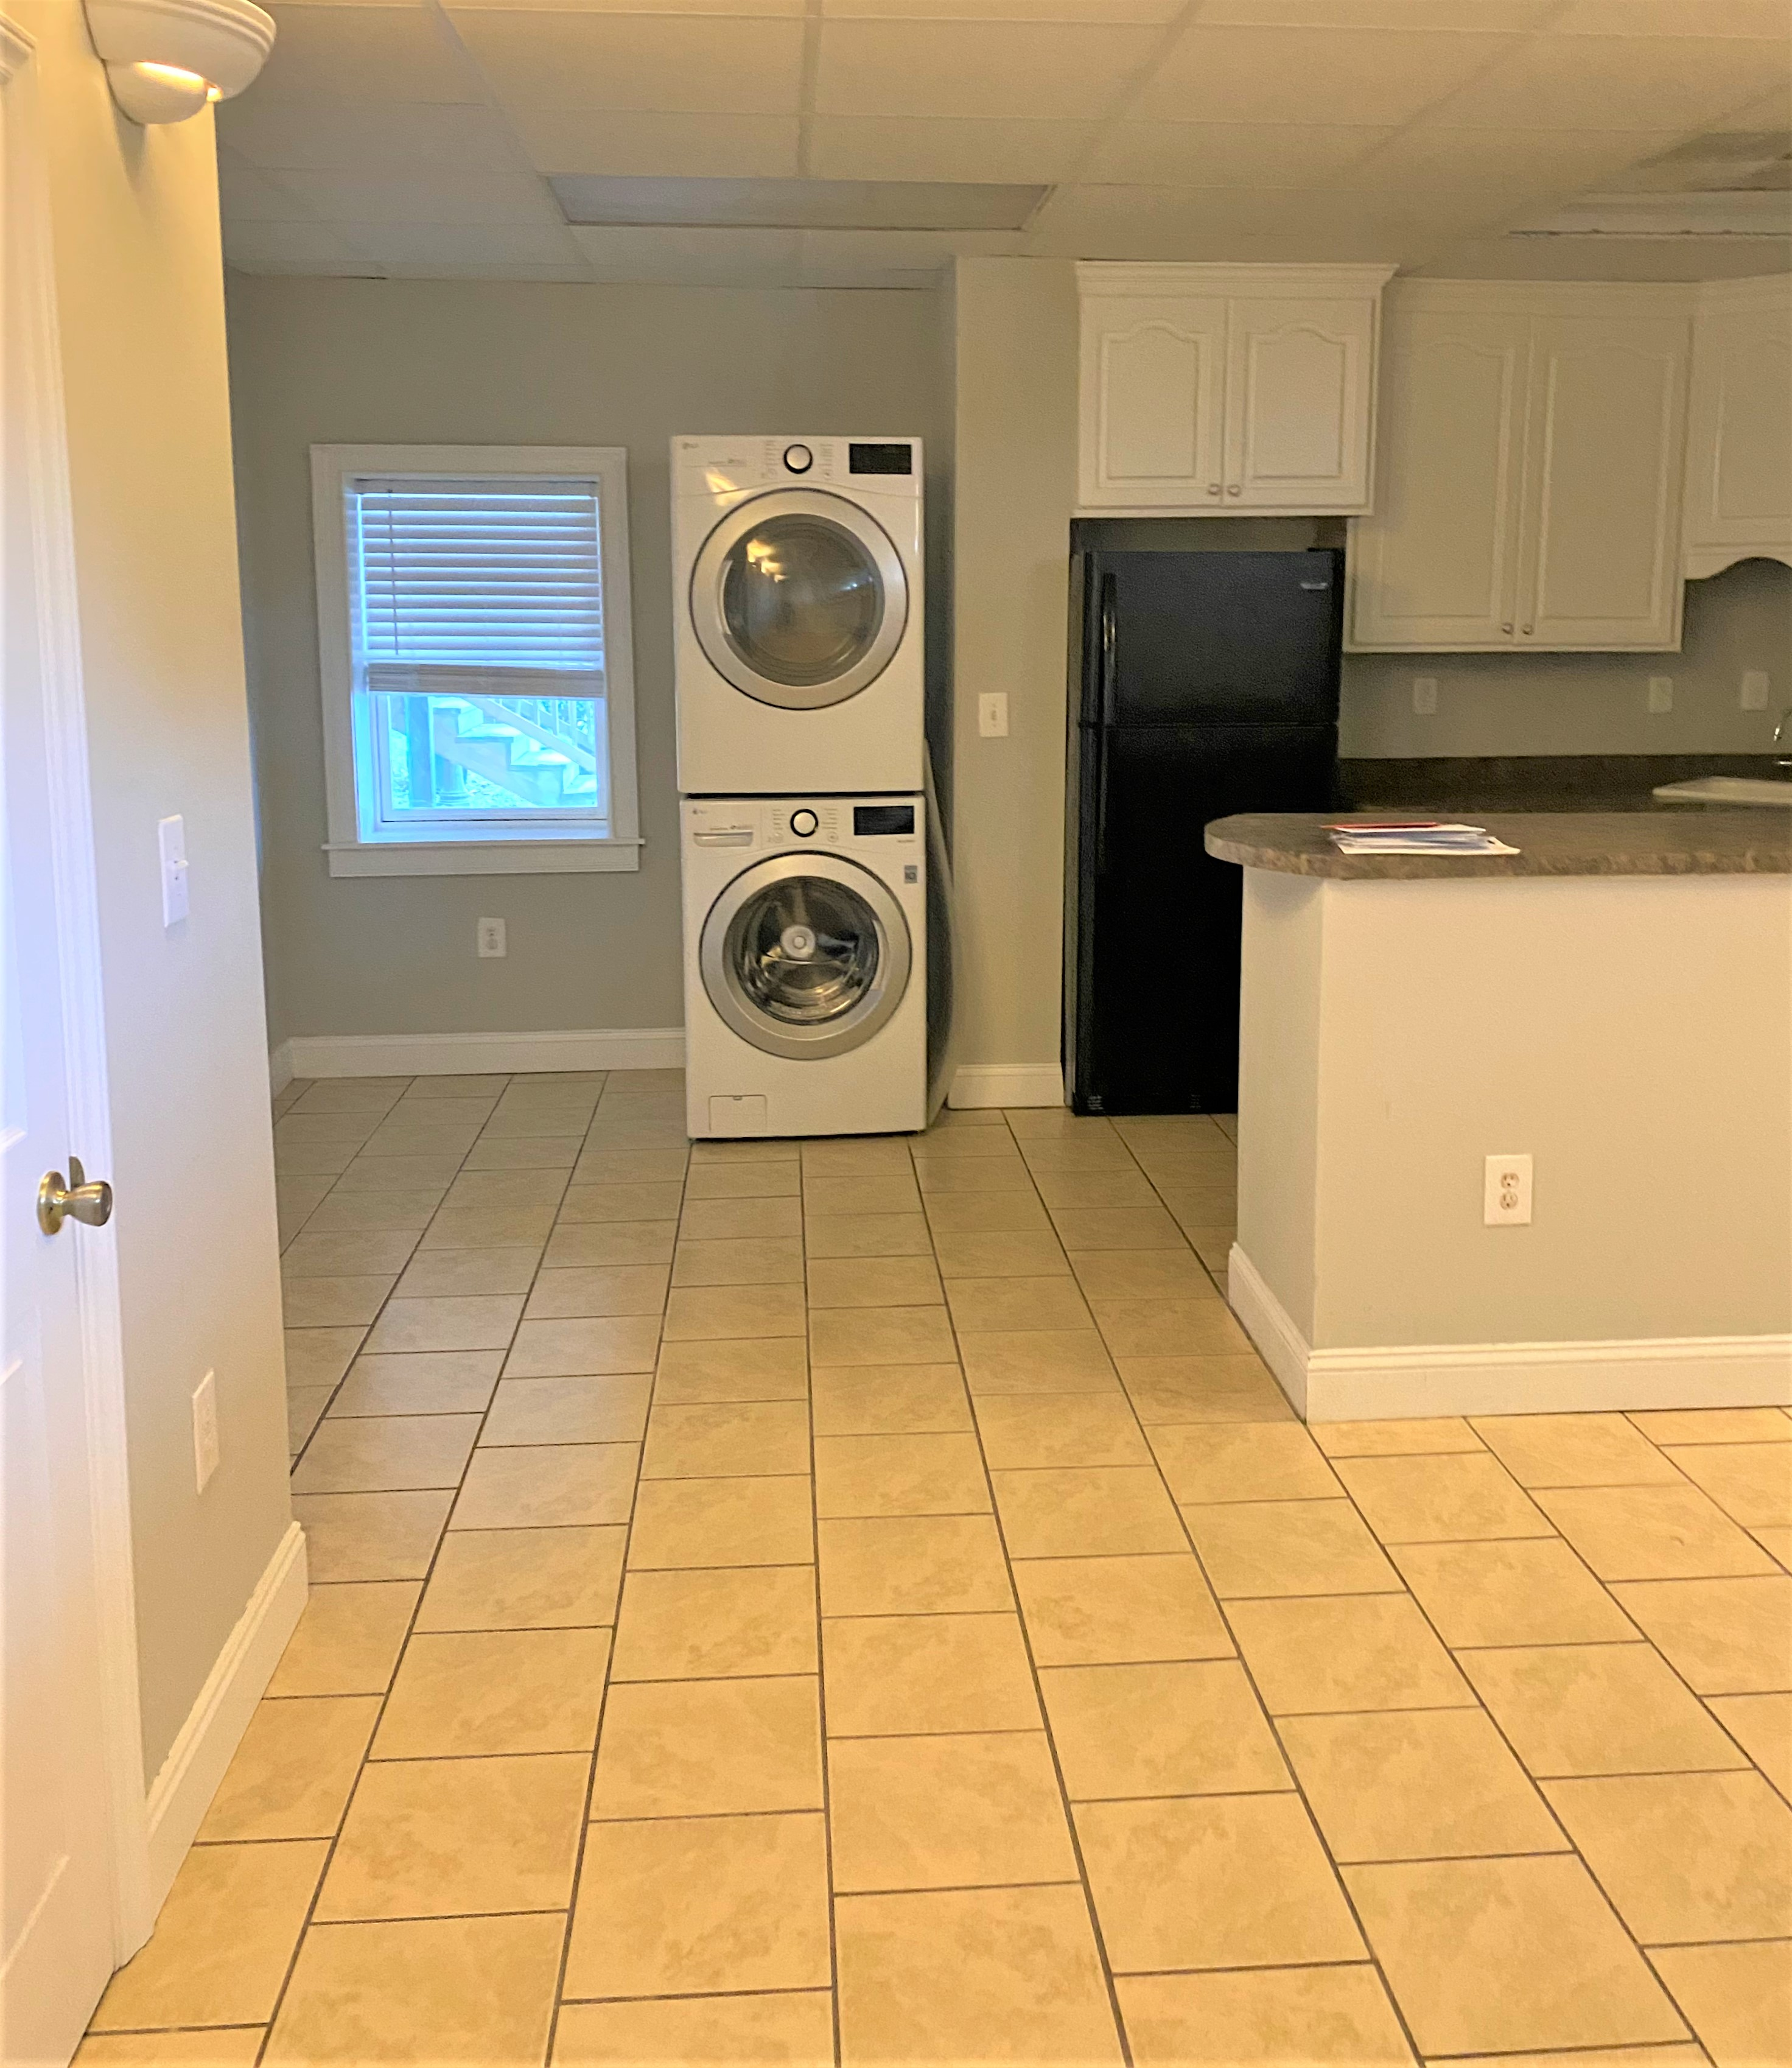 2004 State Street, Cayce, South Carolina 29033, 3 Bedrooms Bedrooms, ,2 BathroomsBathrooms,Apartment,For Rent,State Street,1174